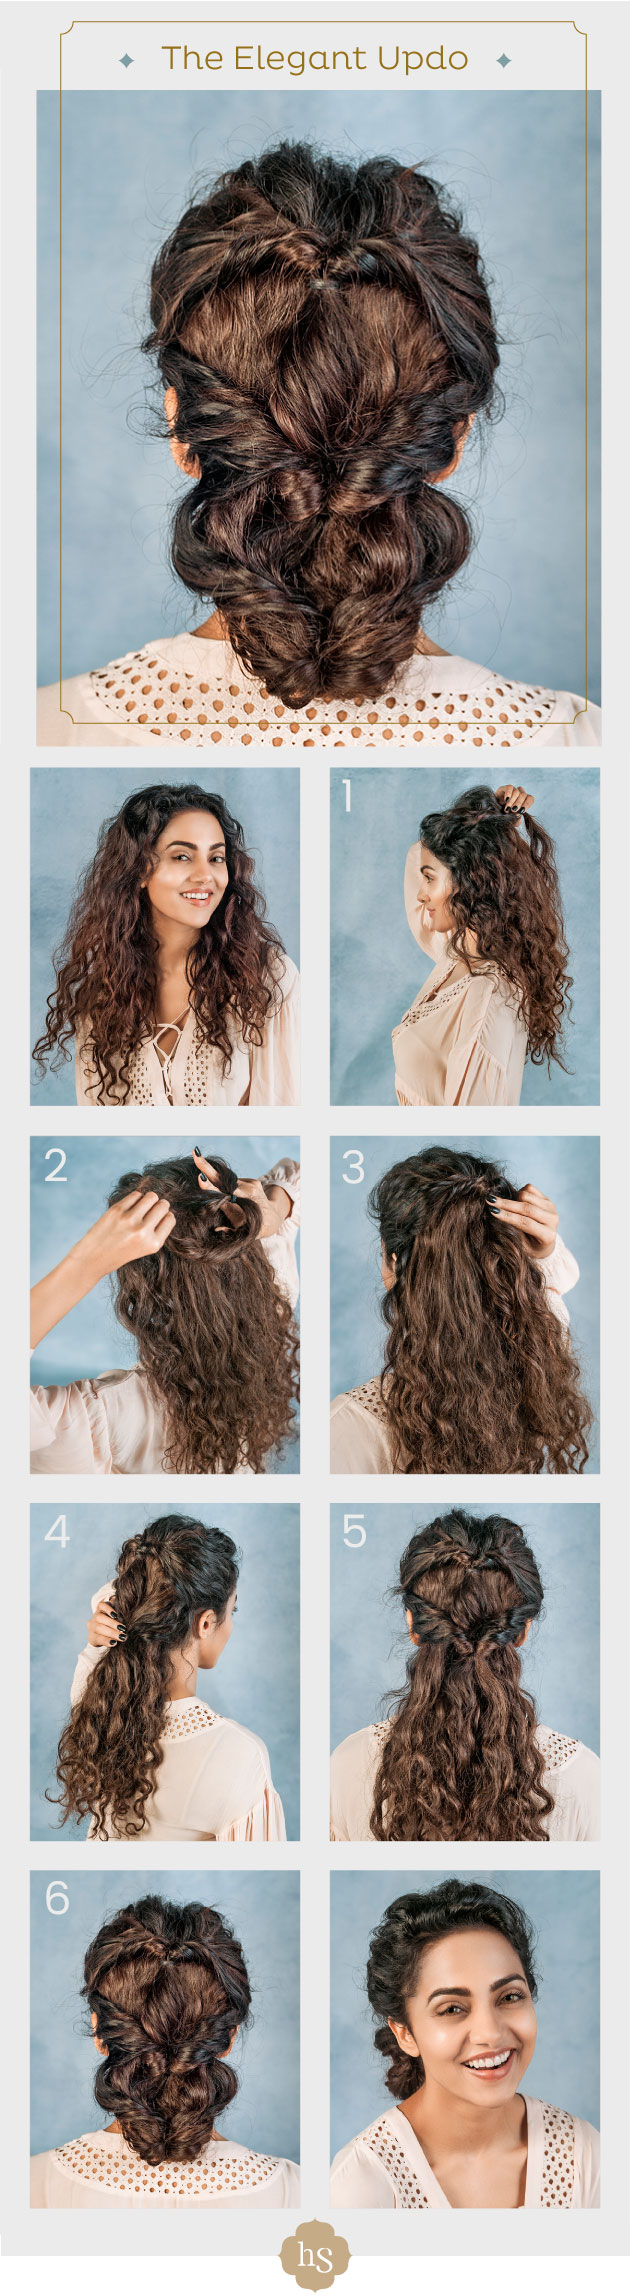 Easy hairstyles for long hair curly hair hairsutras you only need a few bobby pins and hair elastics to style your curly hair here is one of the easy hairstyles for long hair that you can do yourself solutioingenieria Gallery